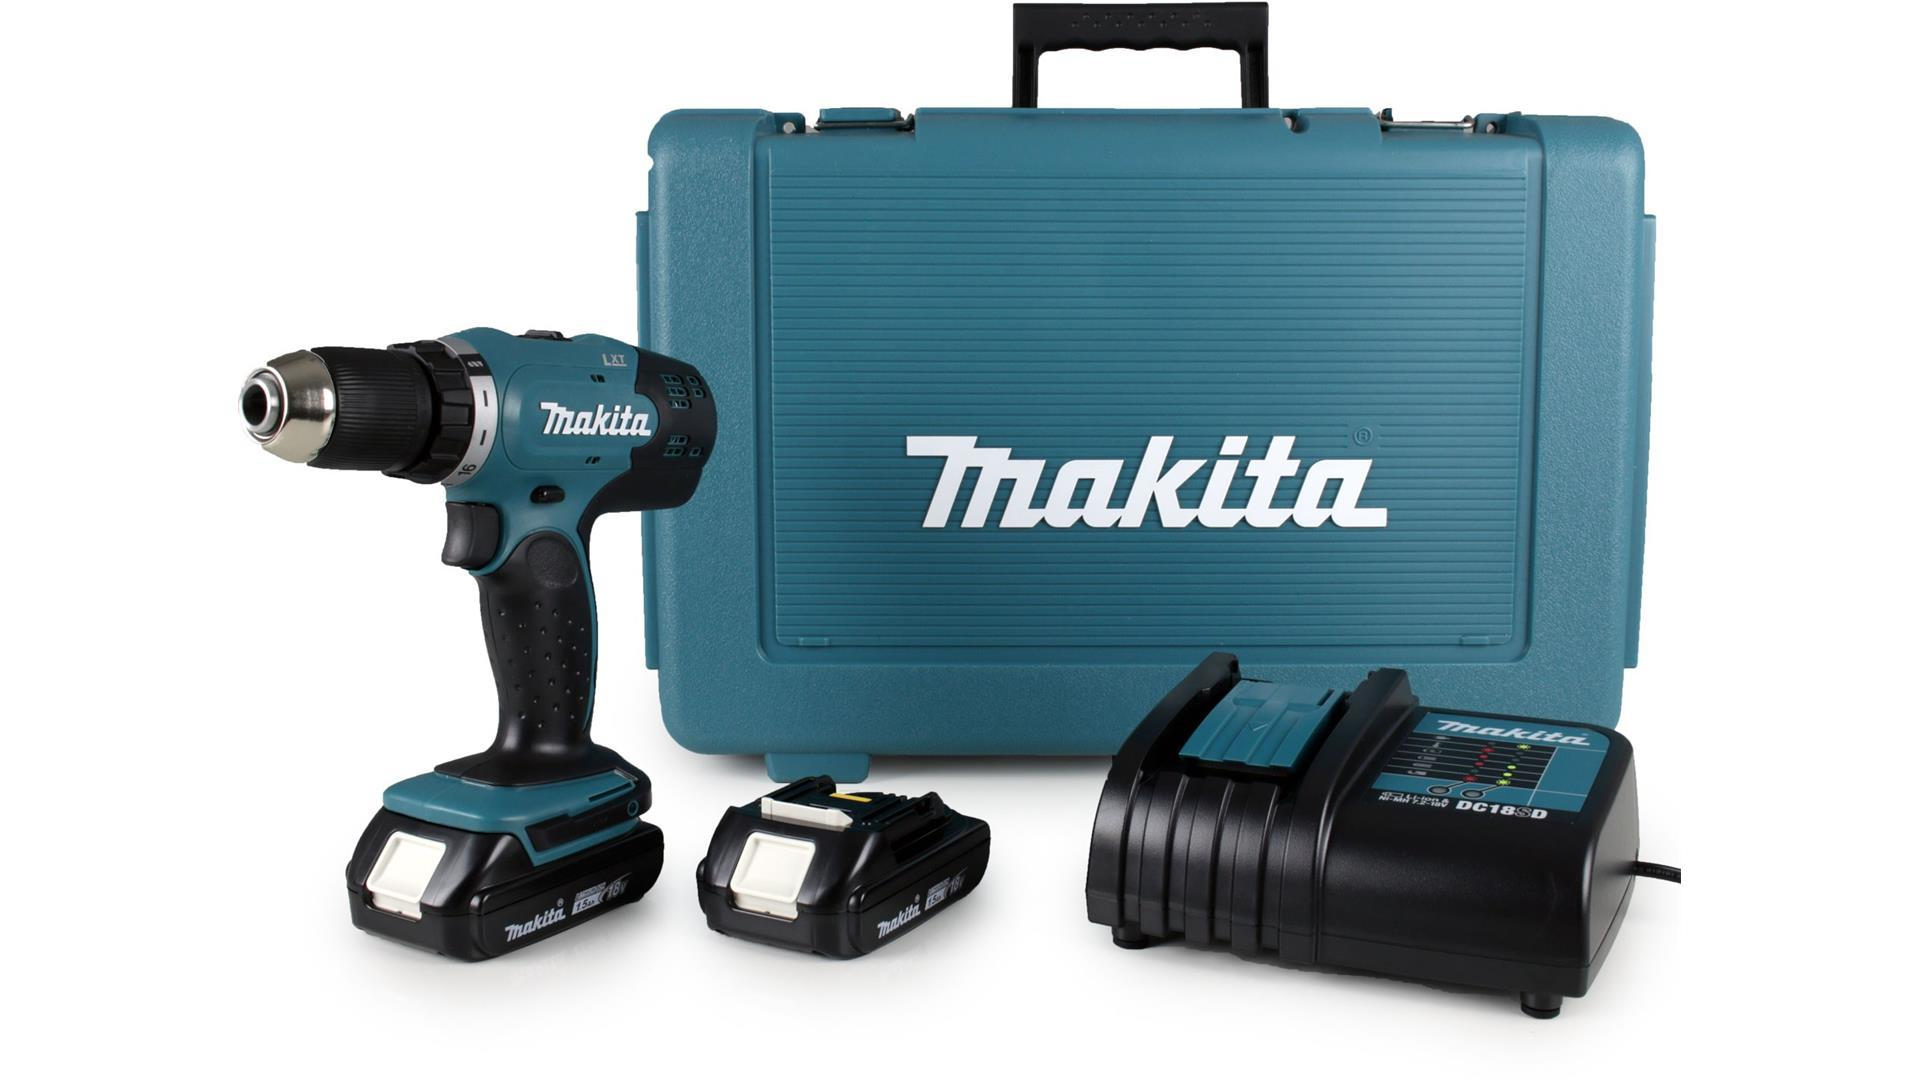 makita 18v 13mm cordless driver drill my power tools. Black Bedroom Furniture Sets. Home Design Ideas